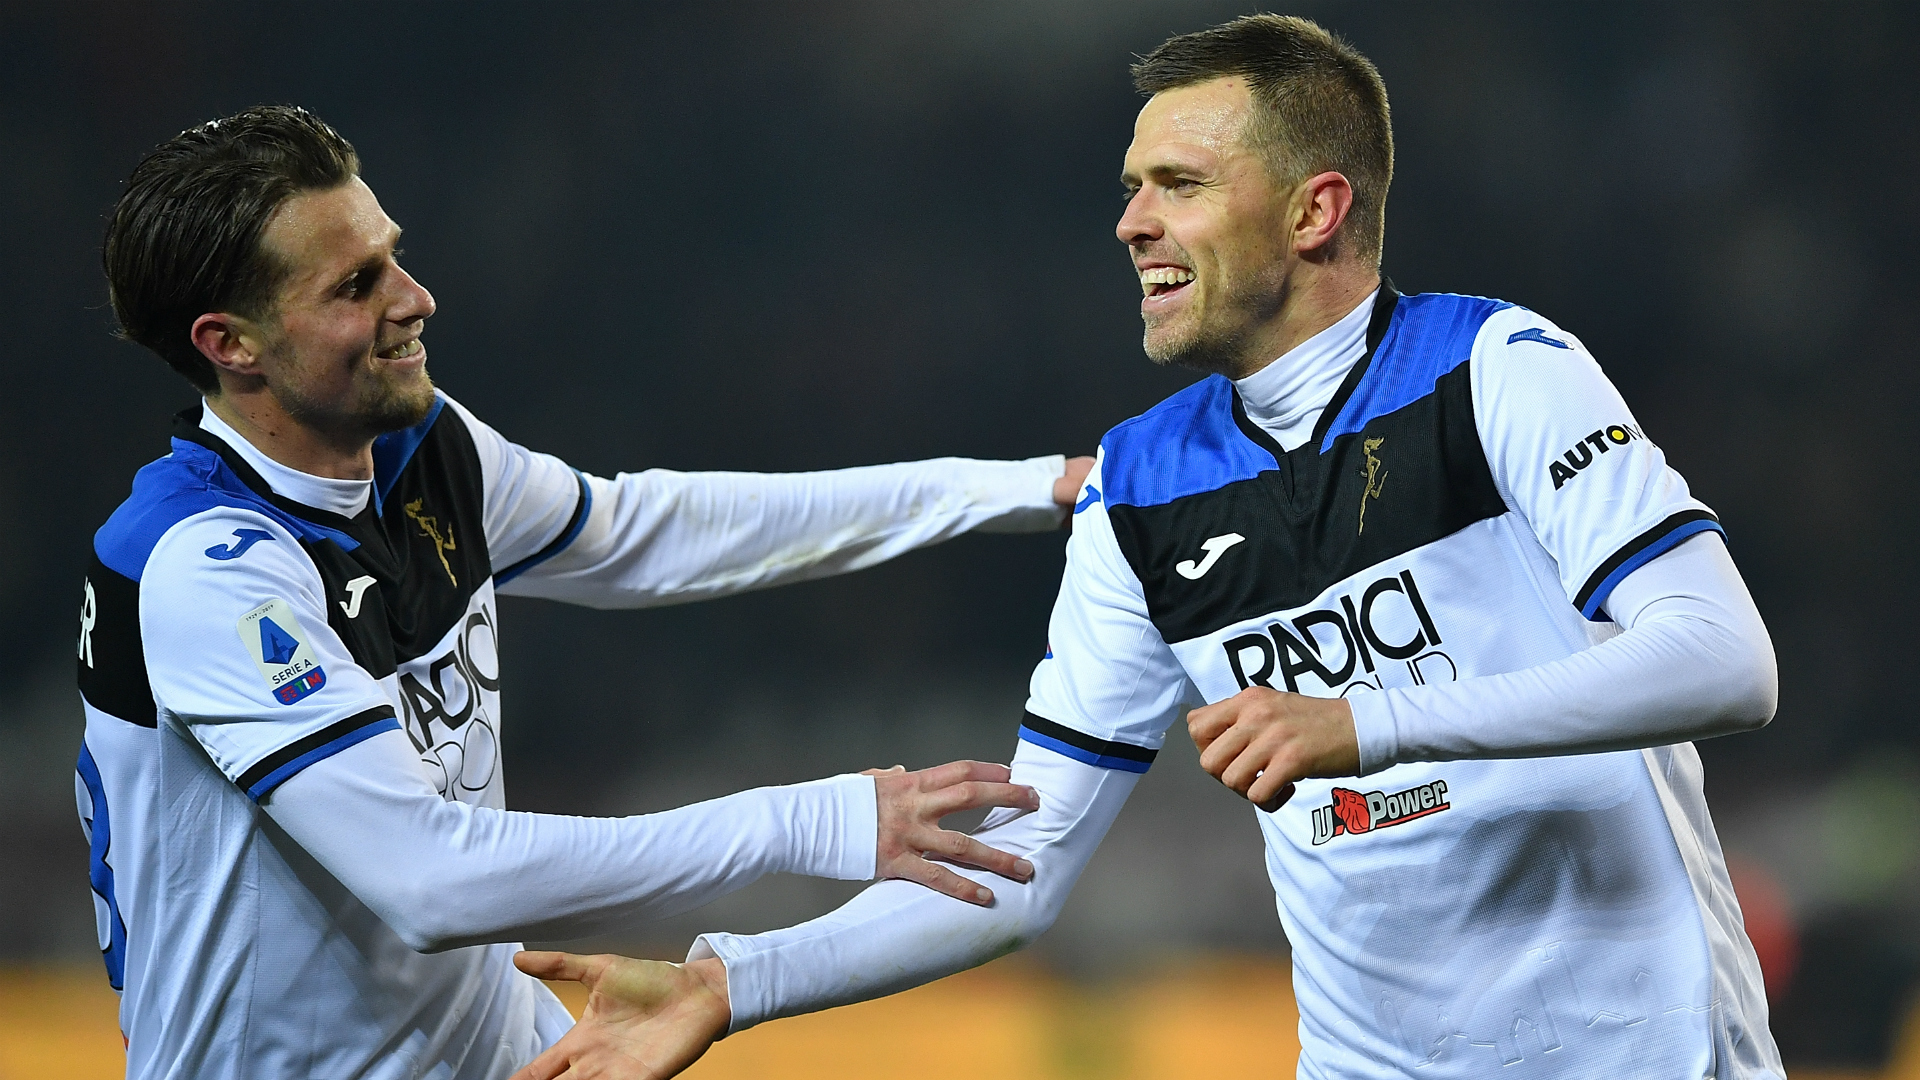 Inspired Josip Ilicic helps Atalanta to astonishing 7-0 win at Torino